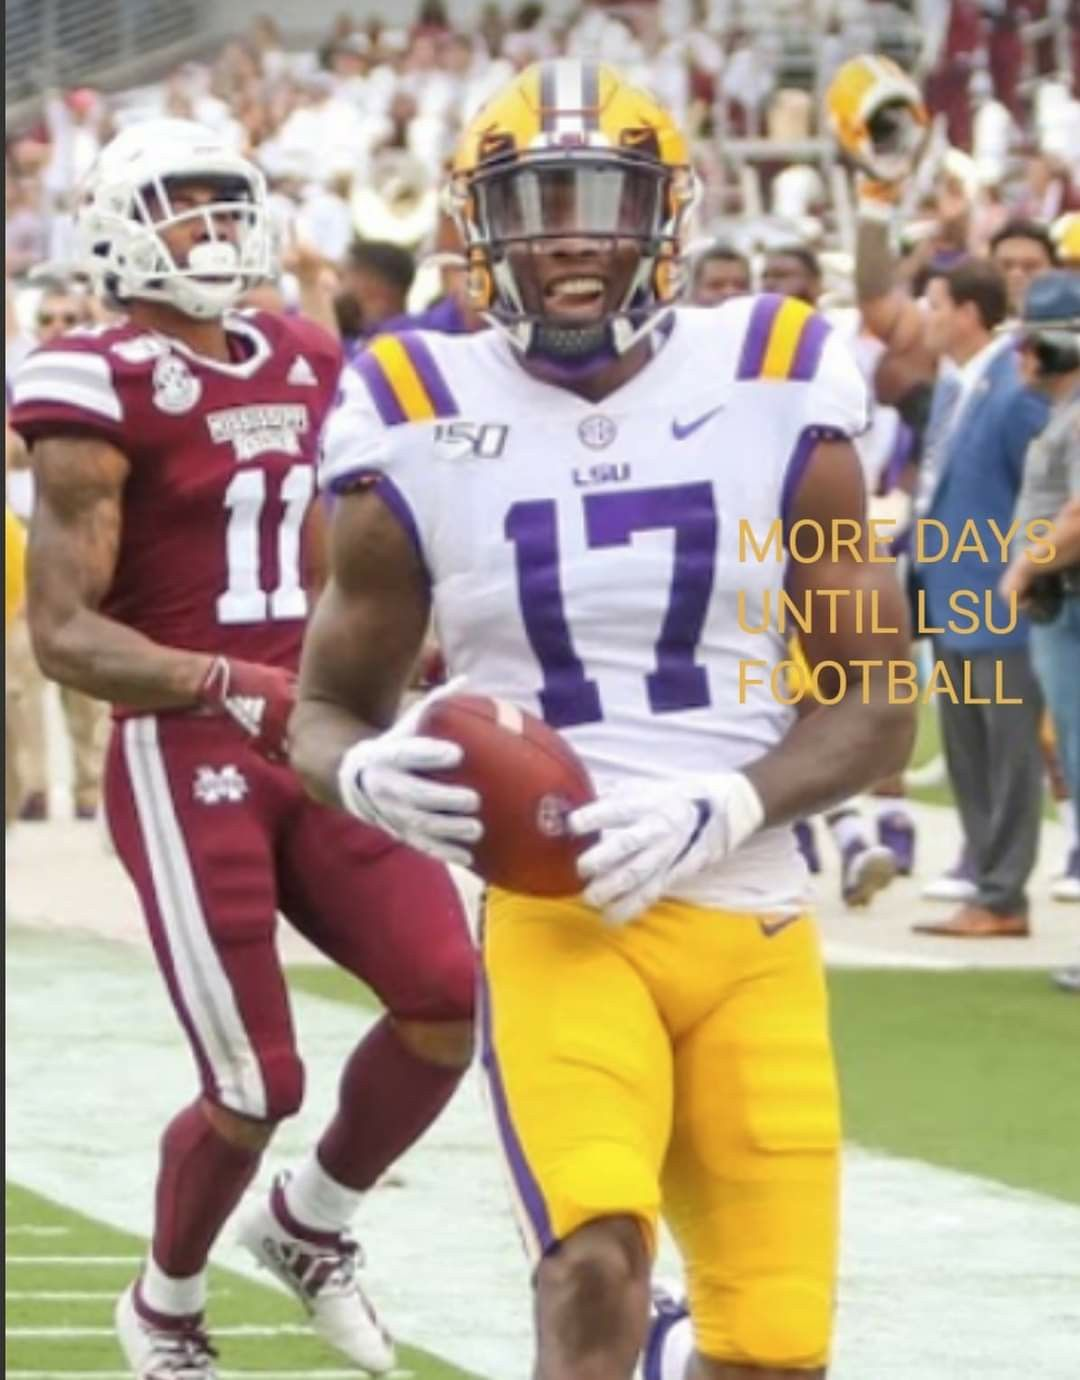 Pin by DRUNKEN CHEF on GEAUX TIGERS in 2020 Football